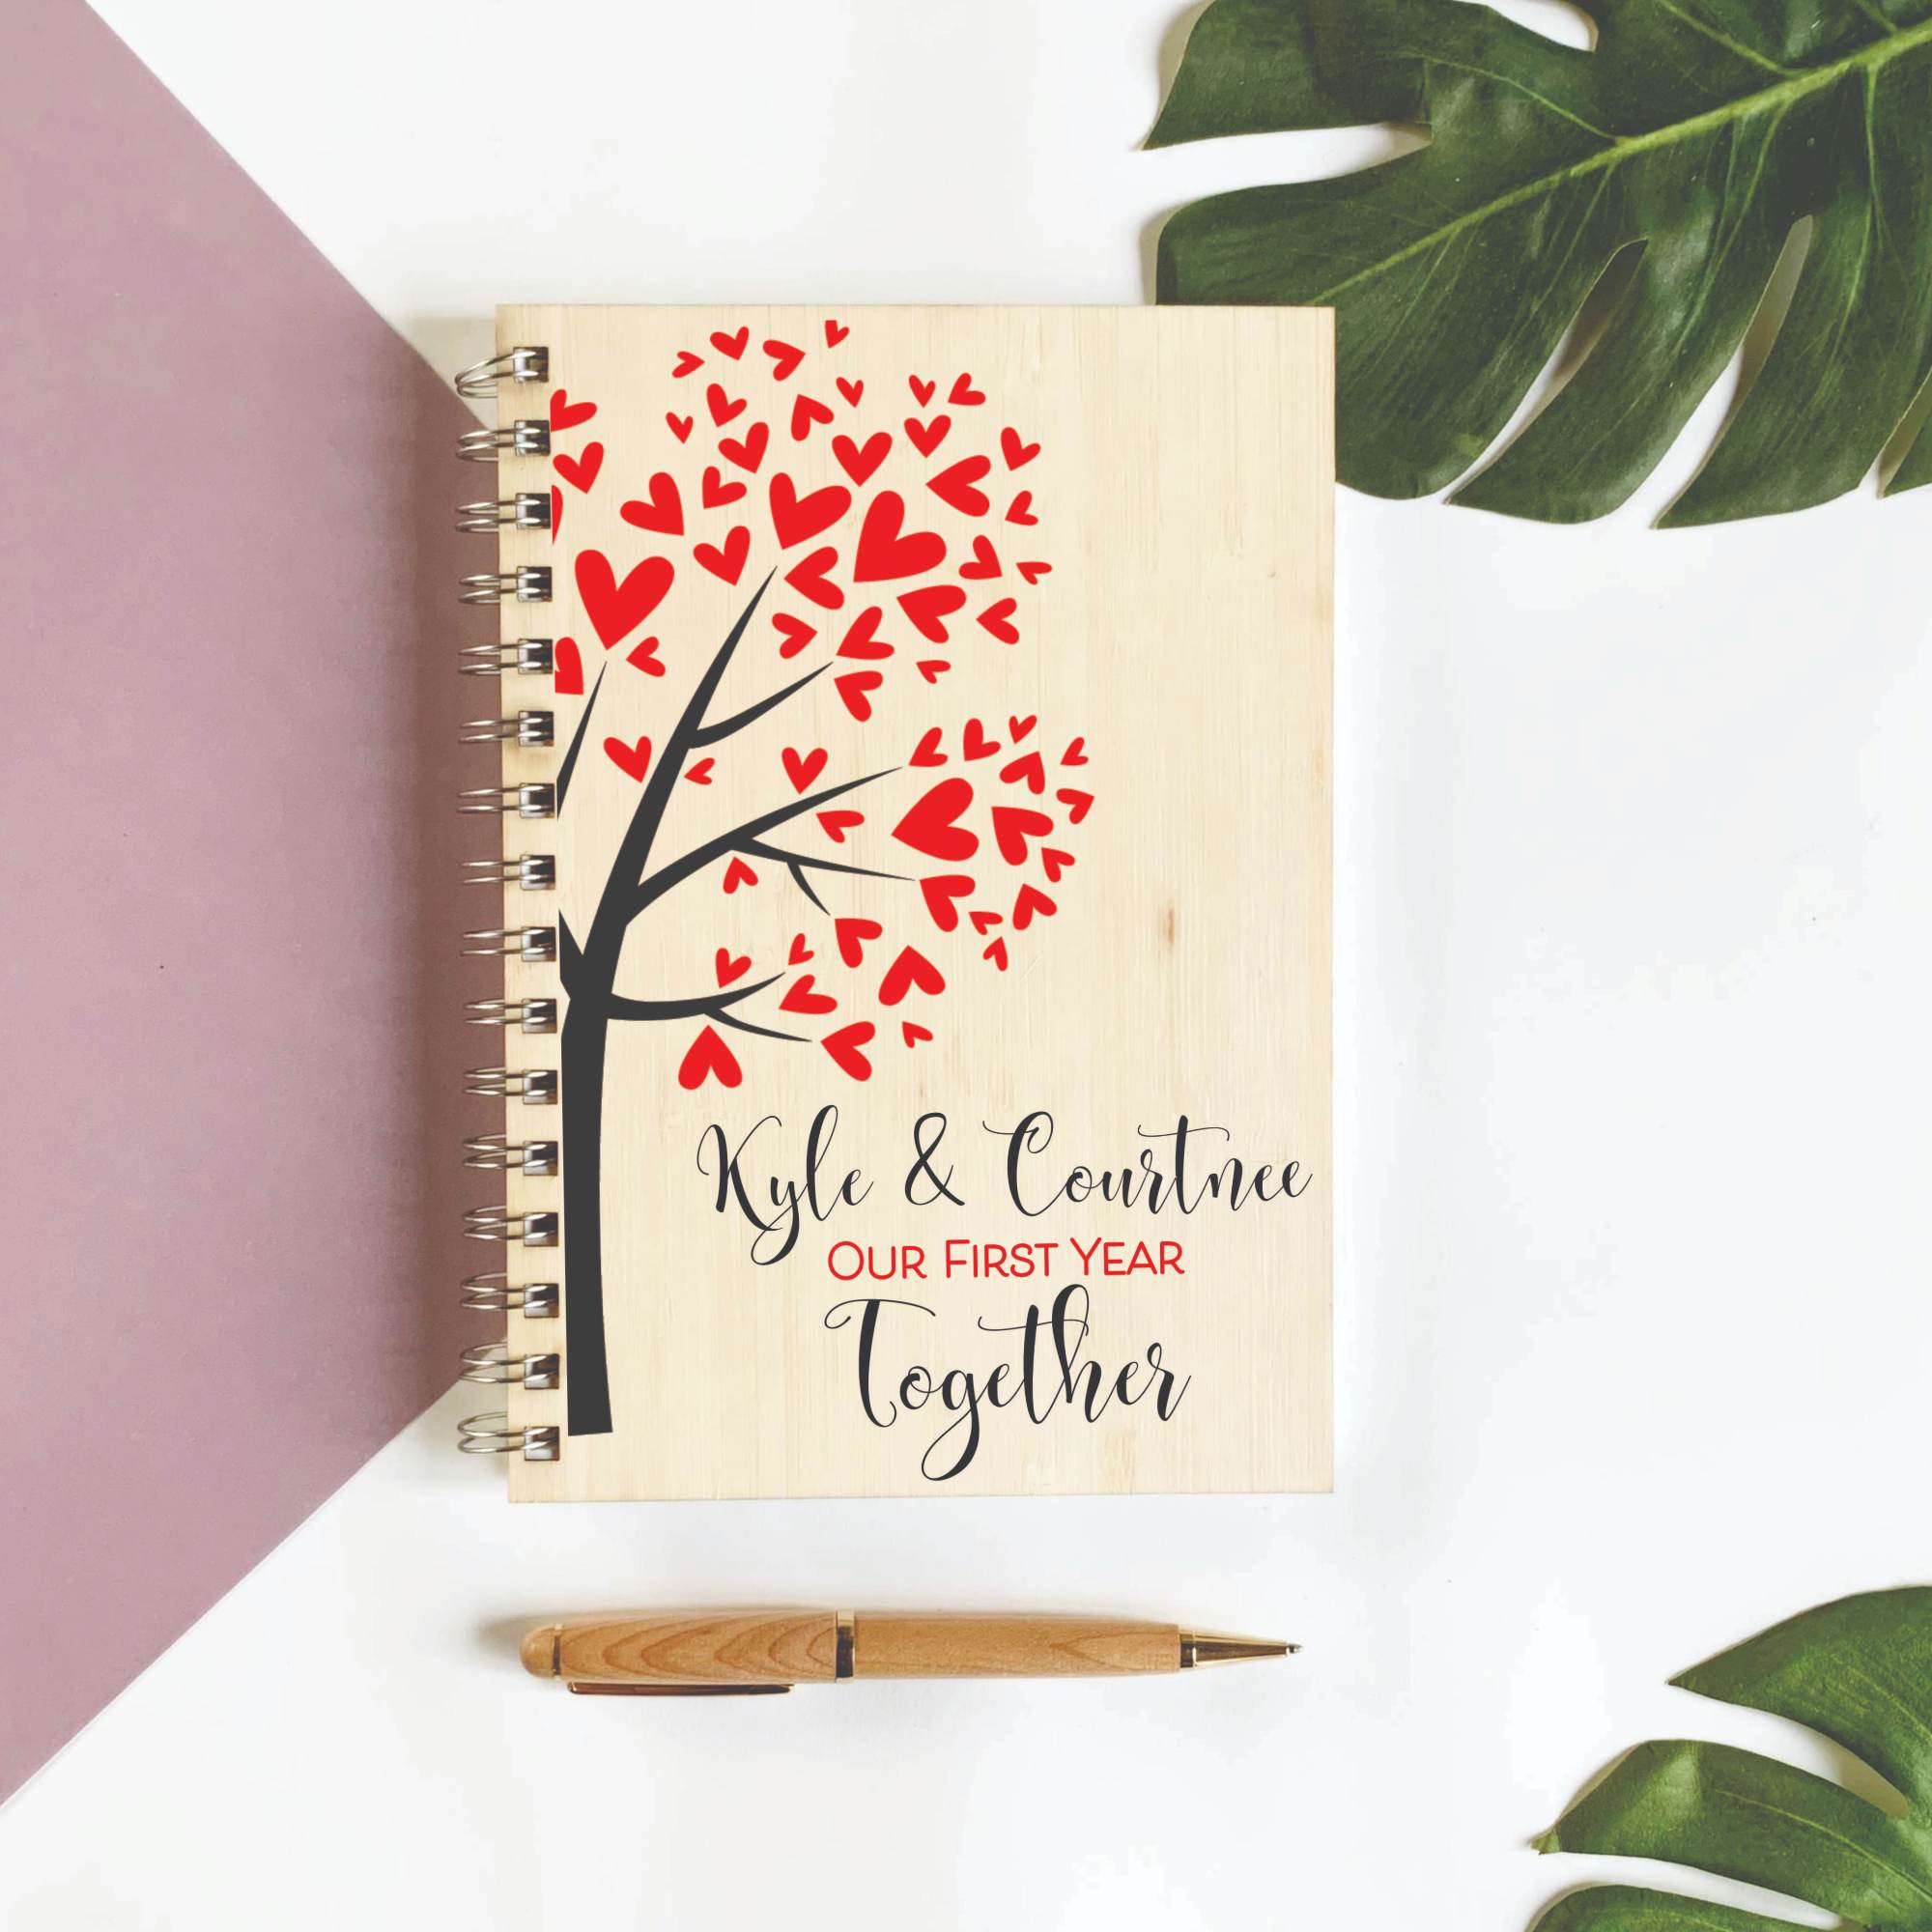 Customised-Diary-valentine's-day-gifts